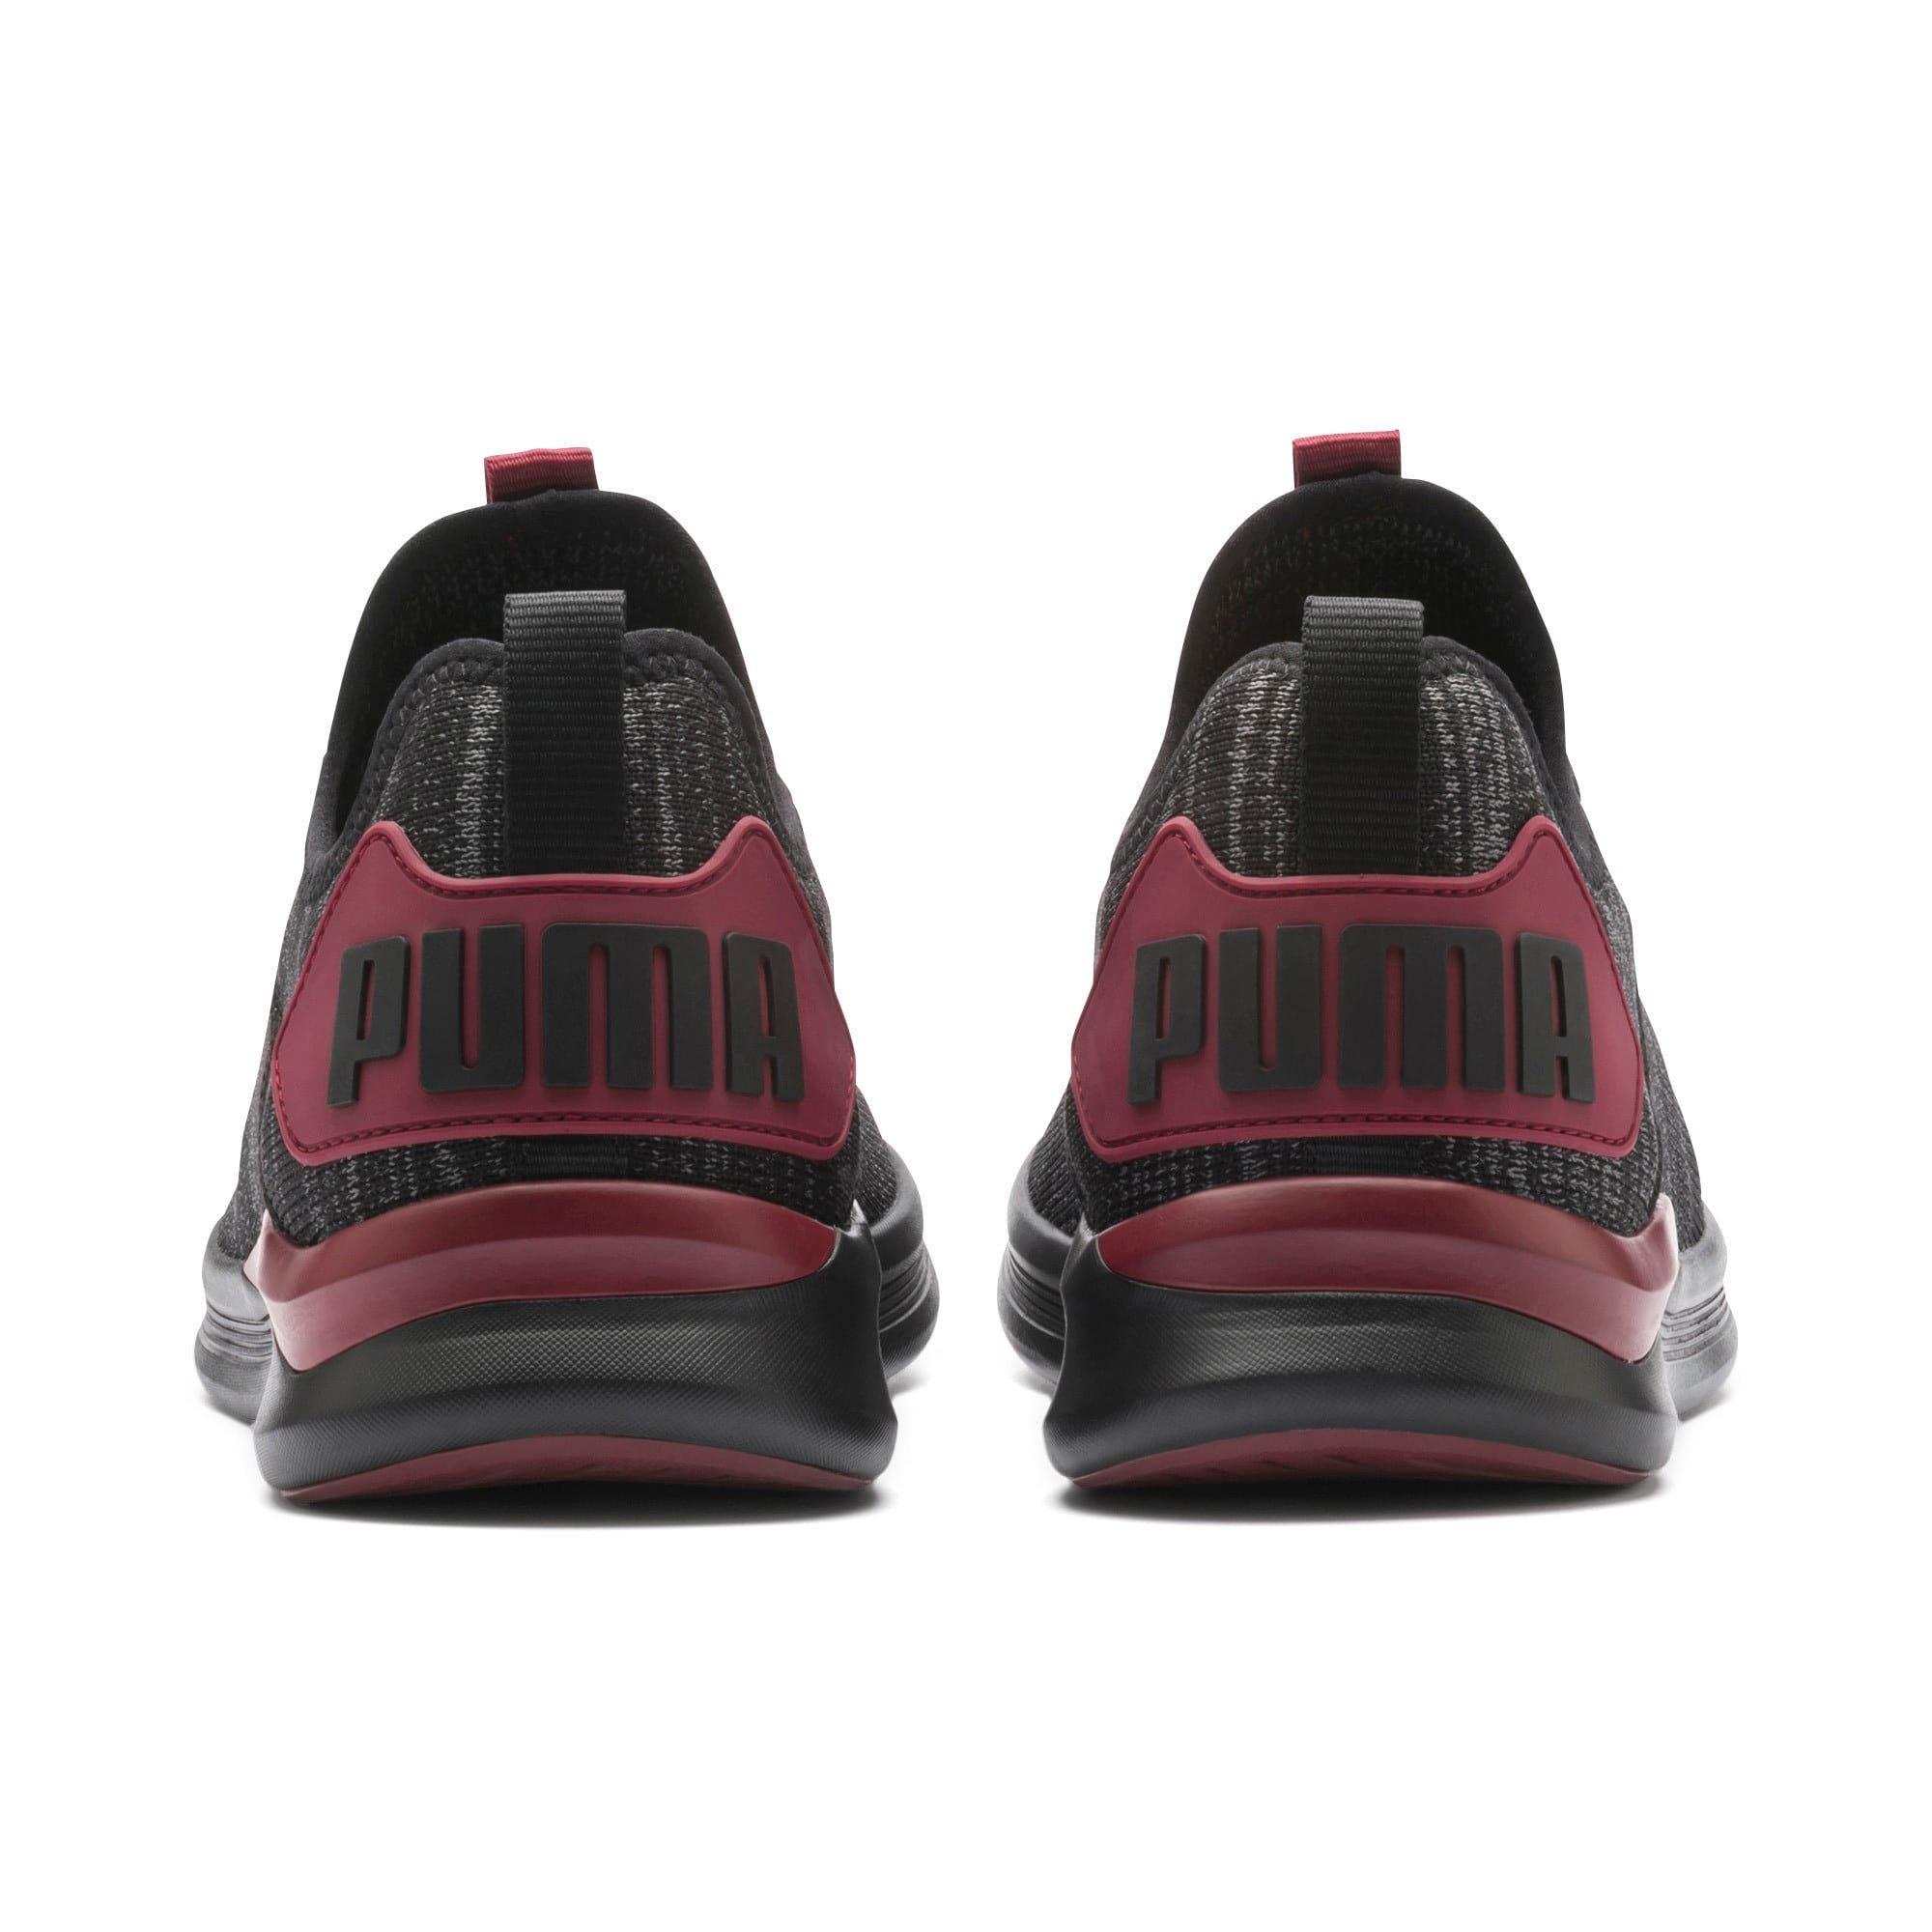 Thumbnail 5 of IGNITE Flash evoKNIT Men's Training Shoes, Puma Black-Rhubarb, medium-IND